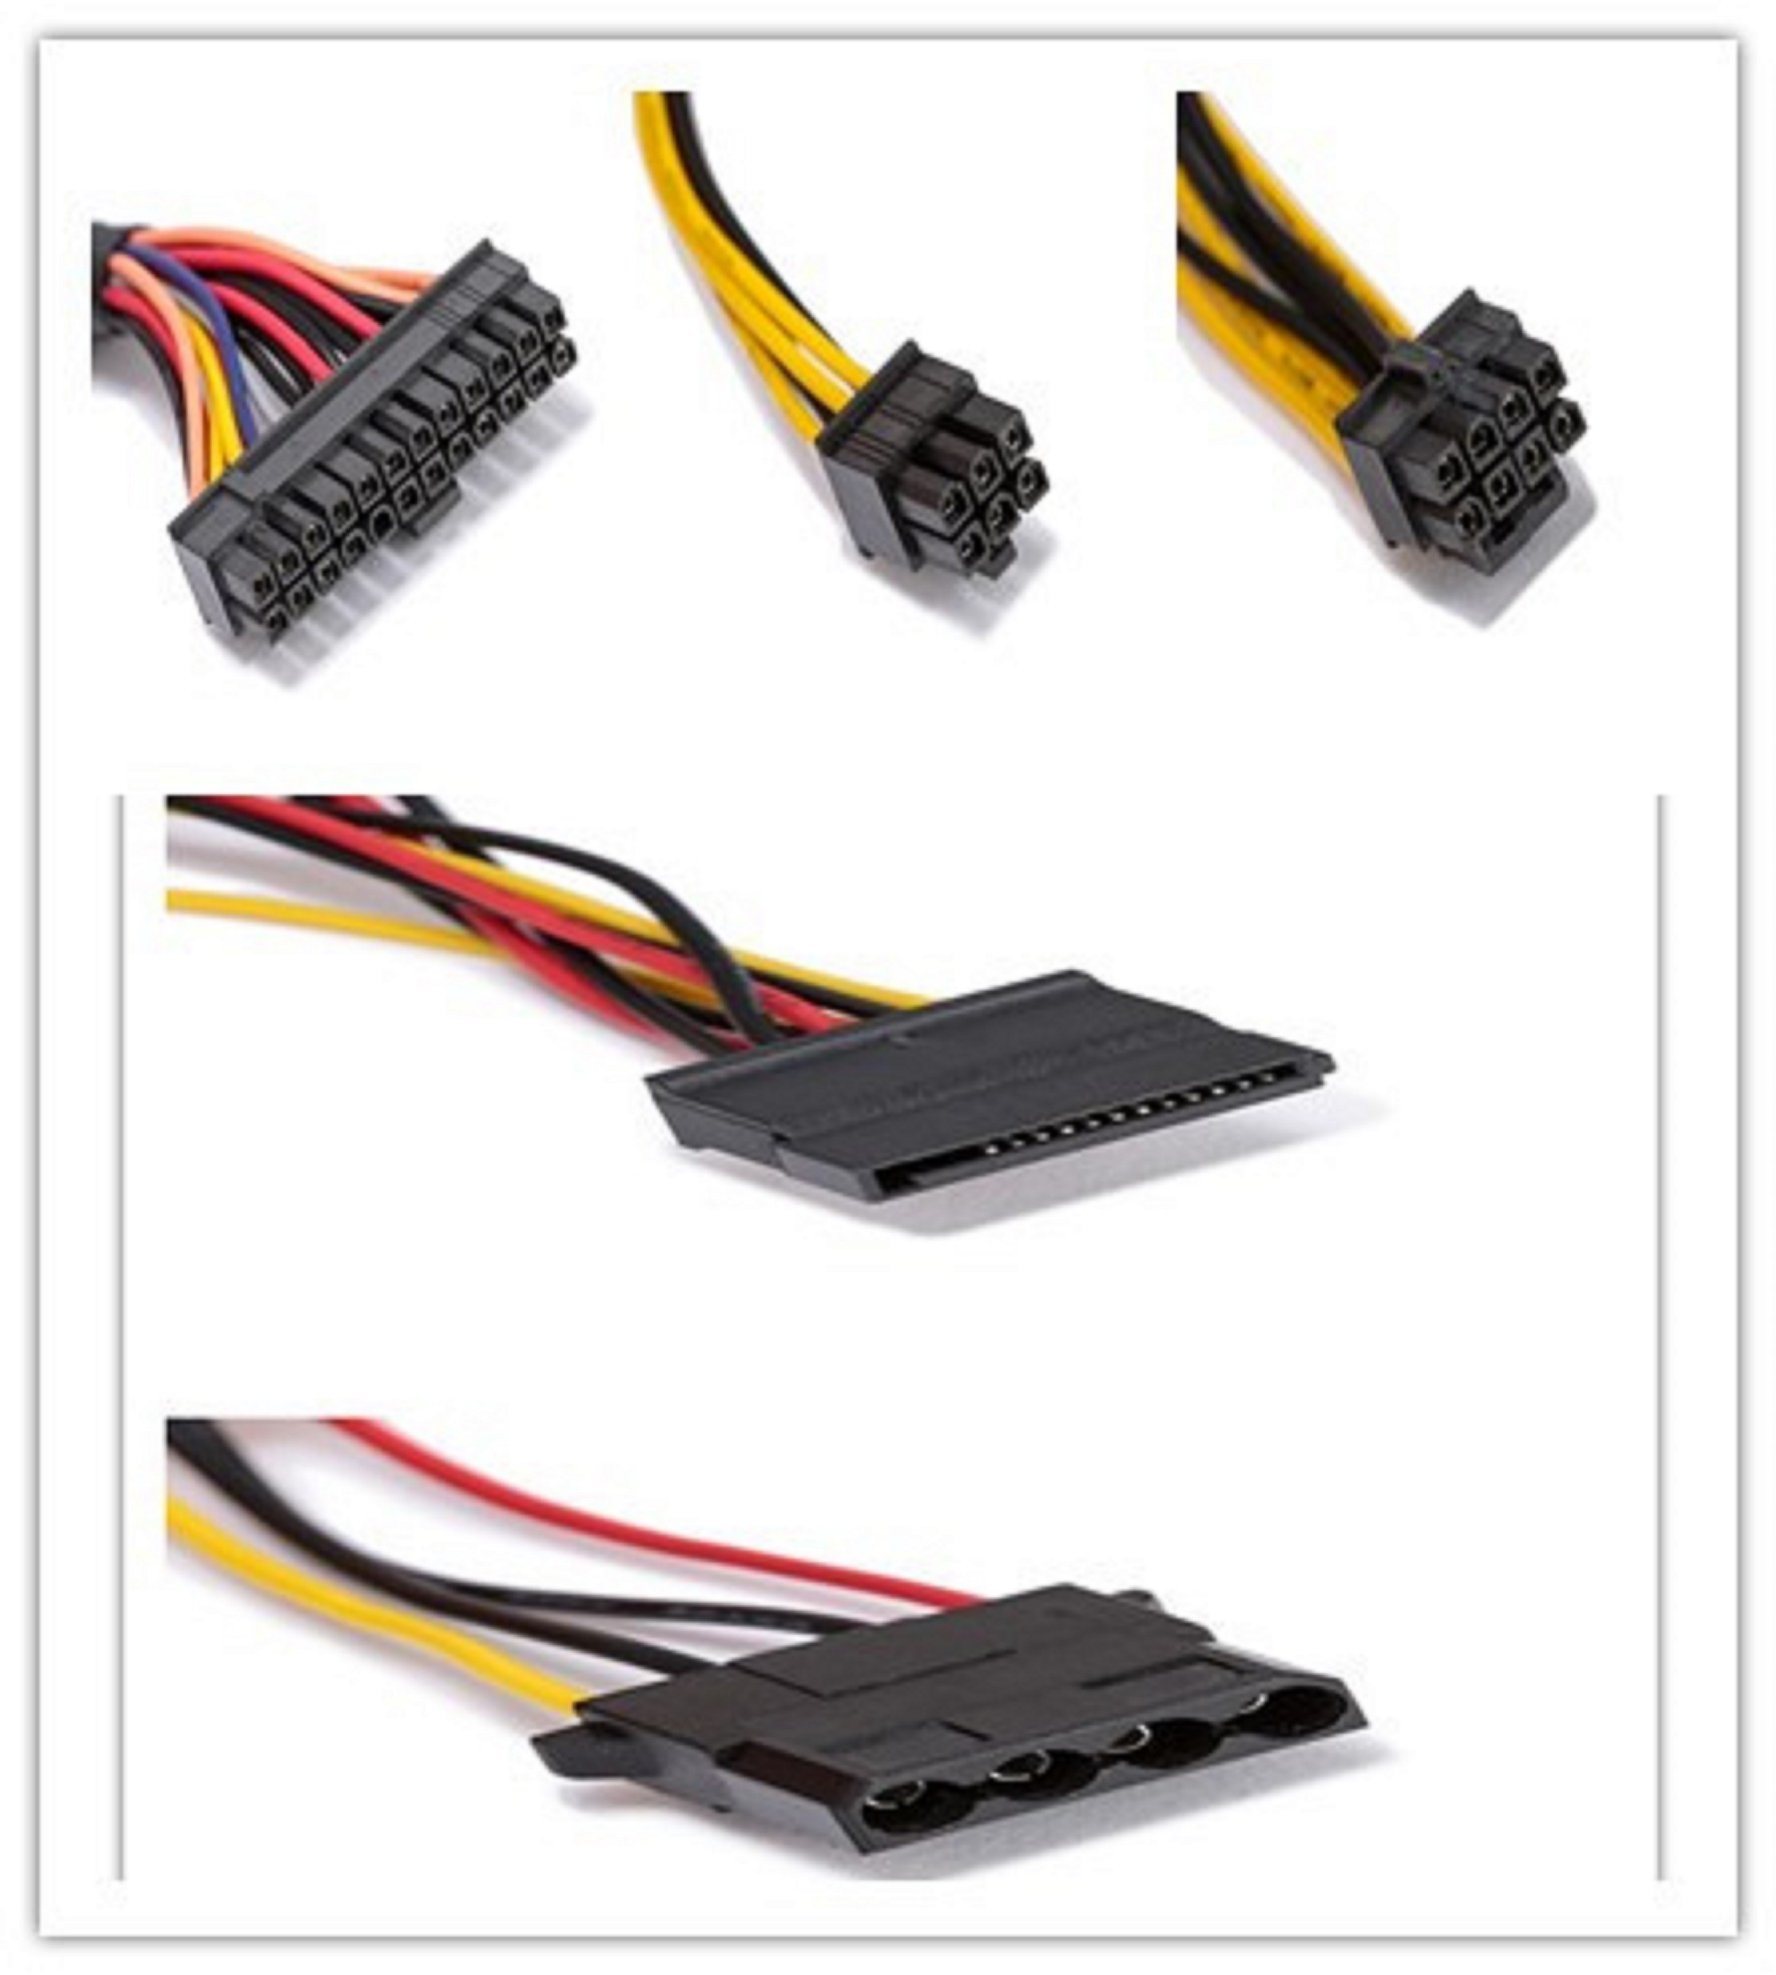 300w Atx Power Supply Switching Pc Smps Protectors Circuit On Double Forward Converter Dual Ball Bearing Fan 8cm 12cm 3 Low Noise Ripple Designhigh Quality High Reliability